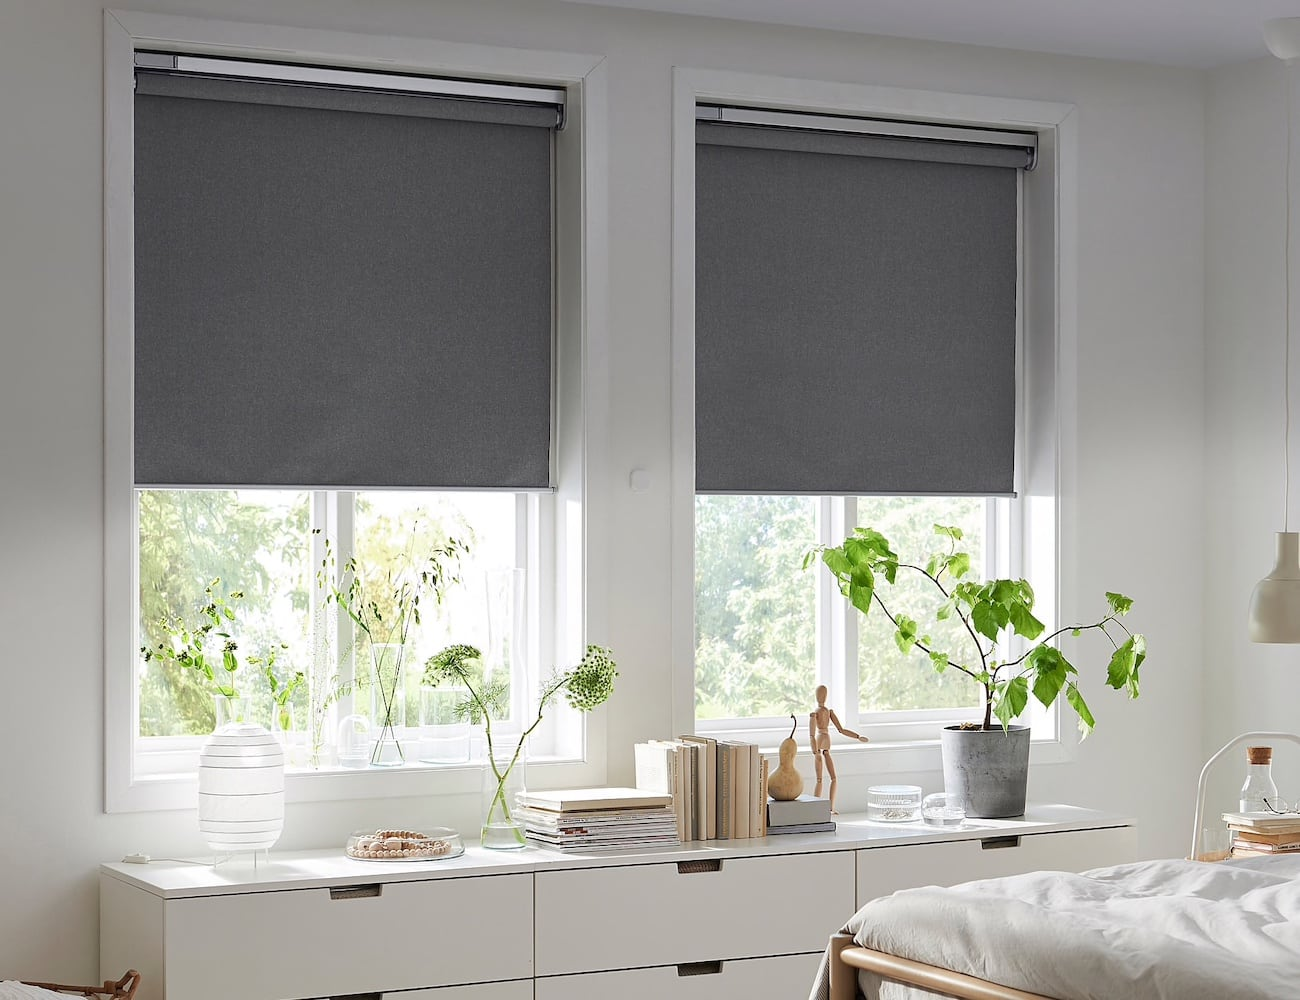 9 Smart home devices for hot summer days - IKEA smart blinds 02